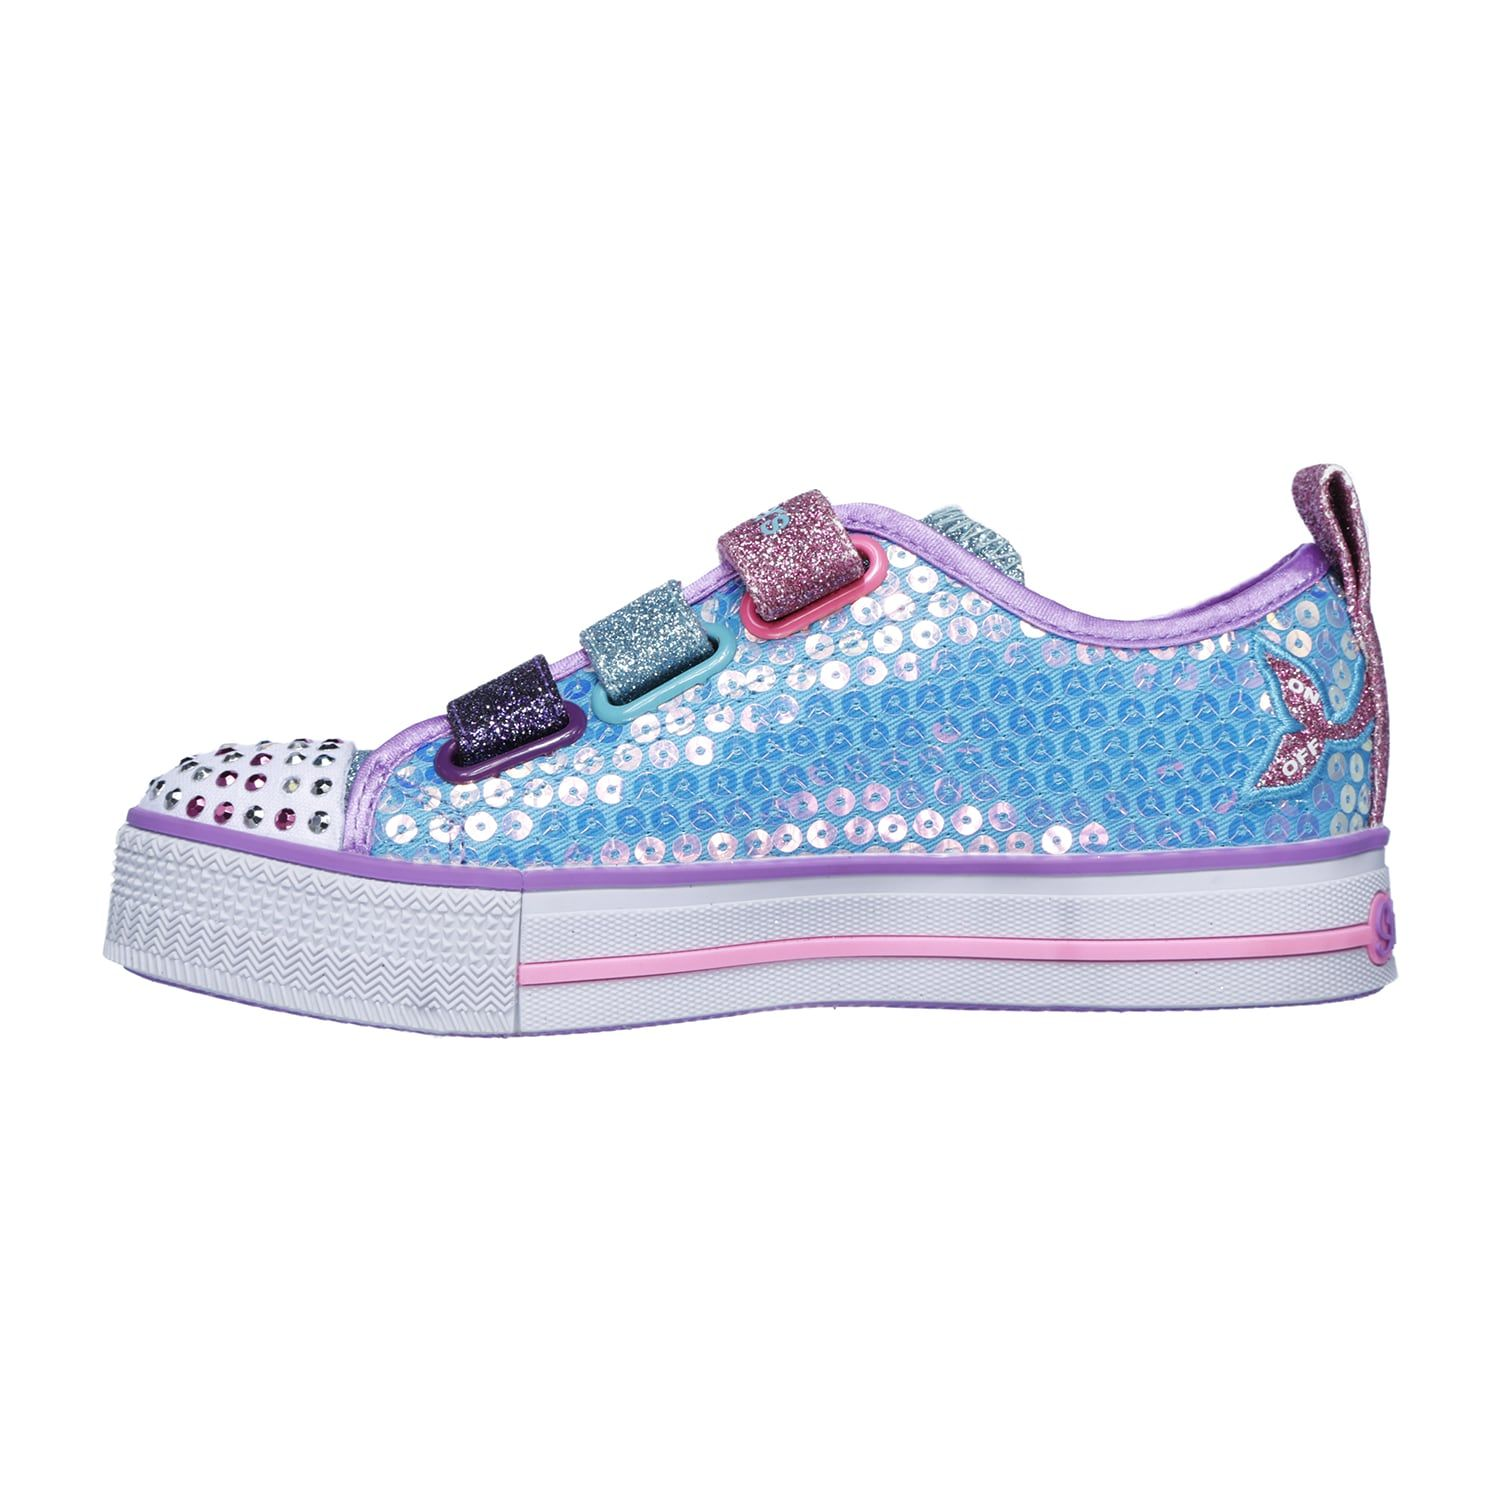 9f64549f8296c Skechers Twinkle Toes Twinkle Lite Mermaid Magic Girls' Light Up Shoes #Toes,  #Lite, #Skechers, #Twinkle